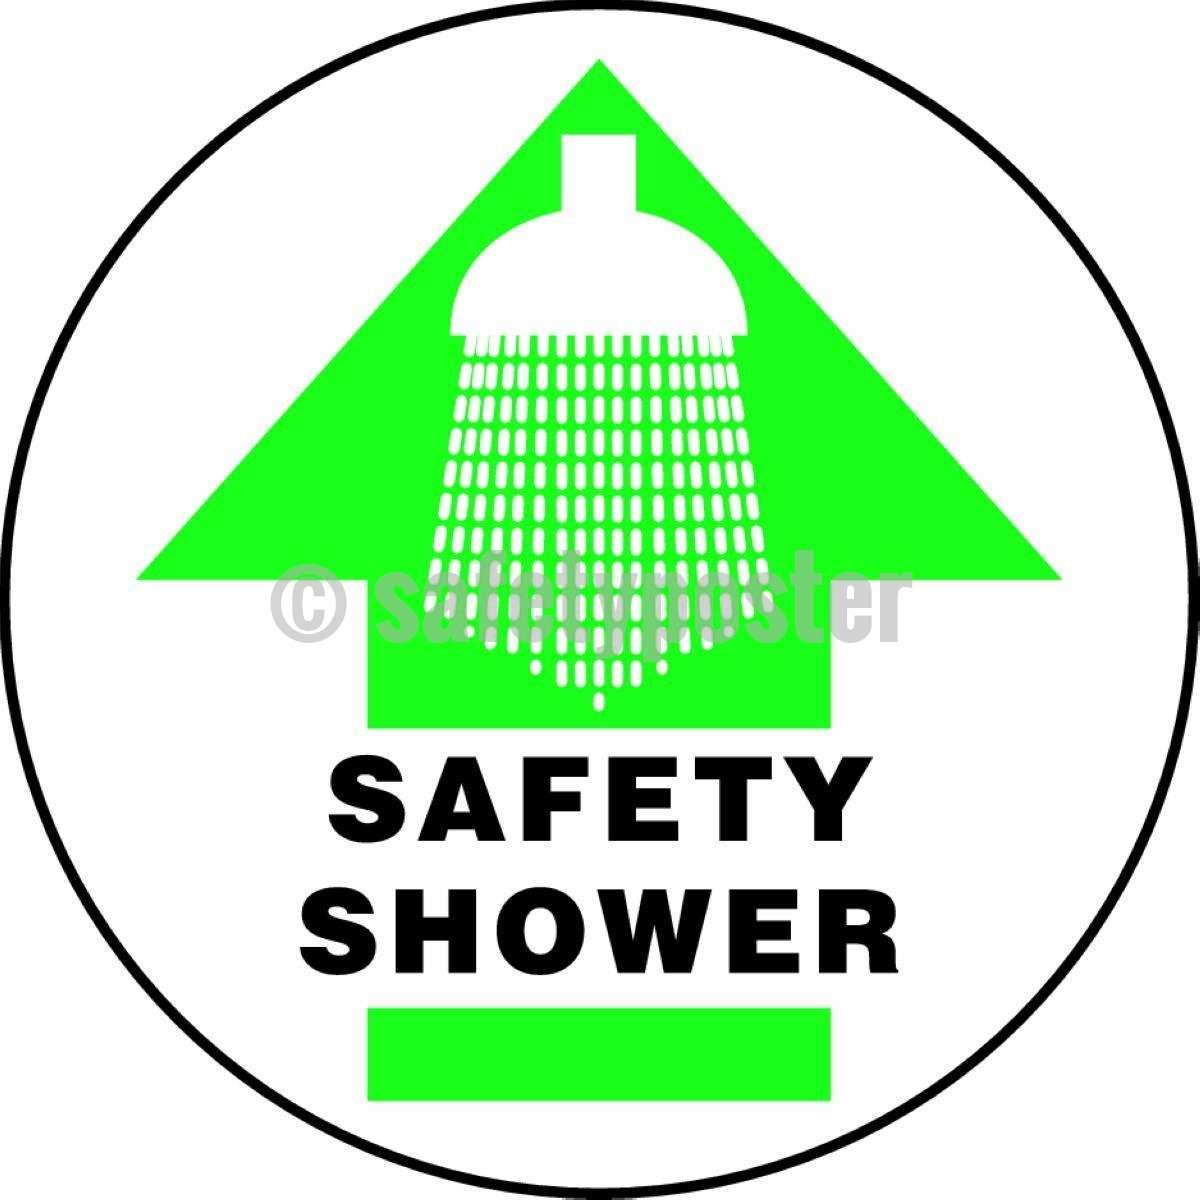 Safety Shower - Floor Sign Adhesive Signs